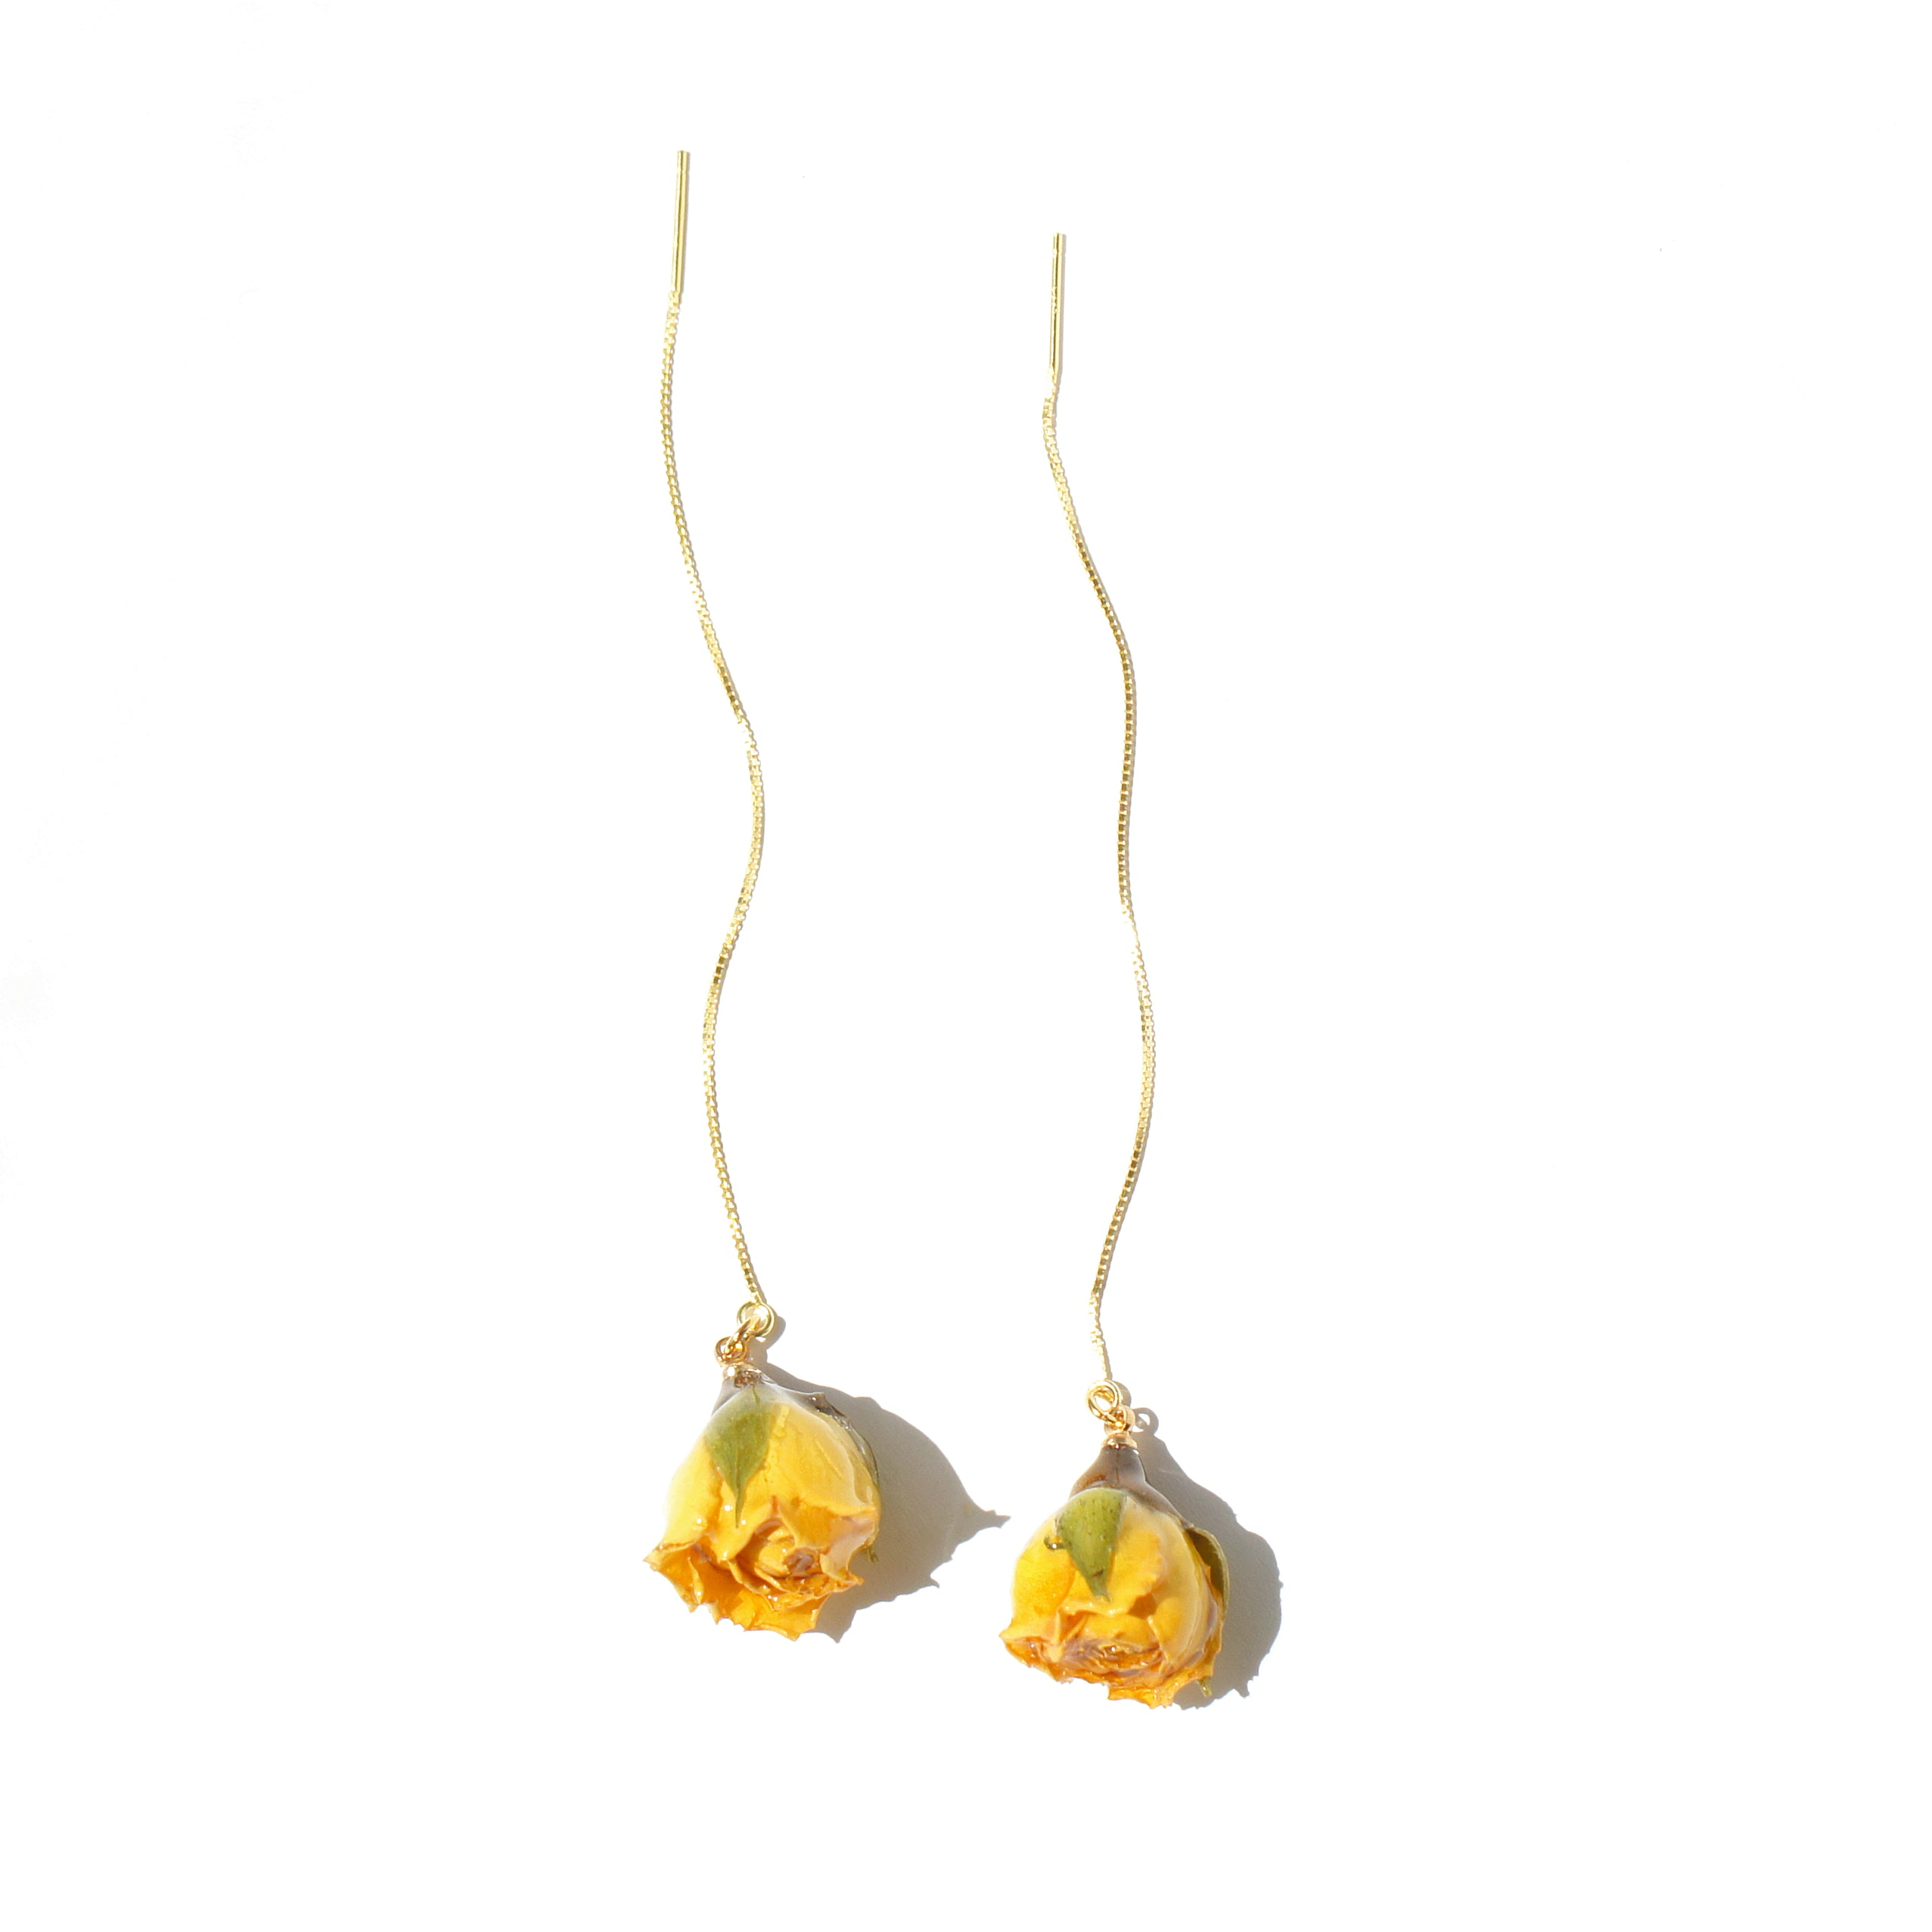 *REAL FLOWER* Rosa Korresia Yellow Rosebud 18K Gold Vermeil Threader Earrings